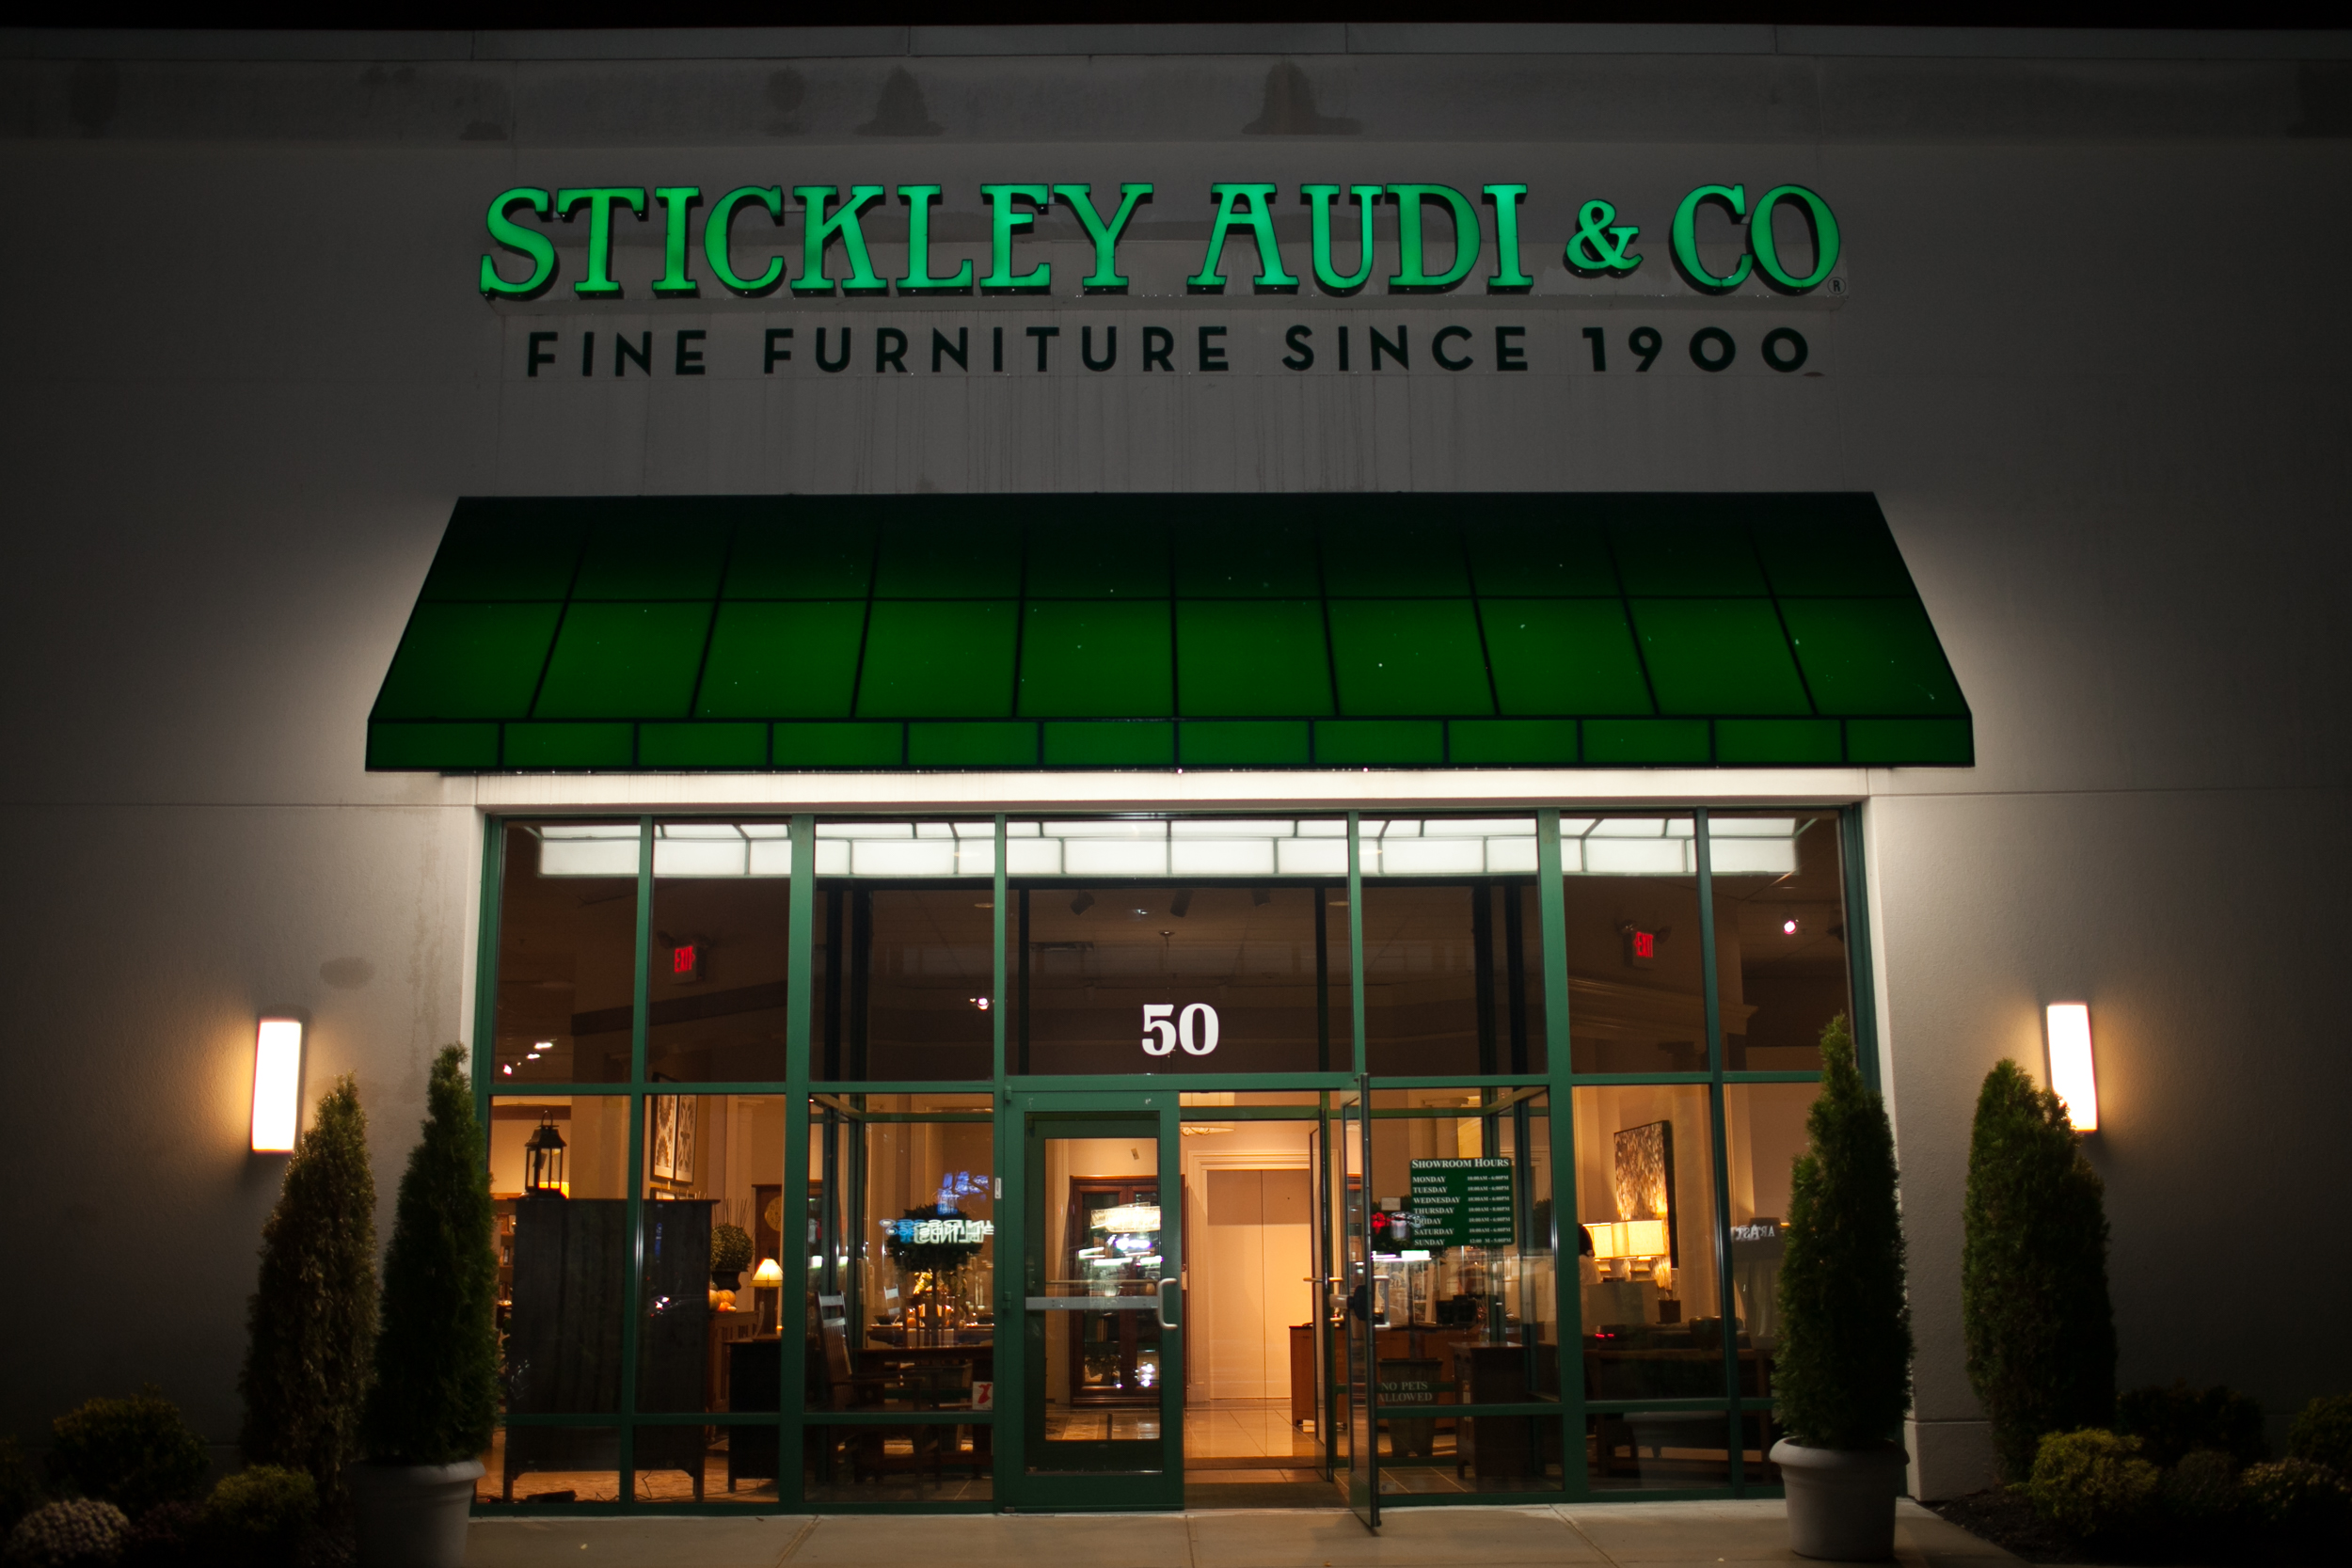 The White Plains storefront of Stickley Audi & Co.